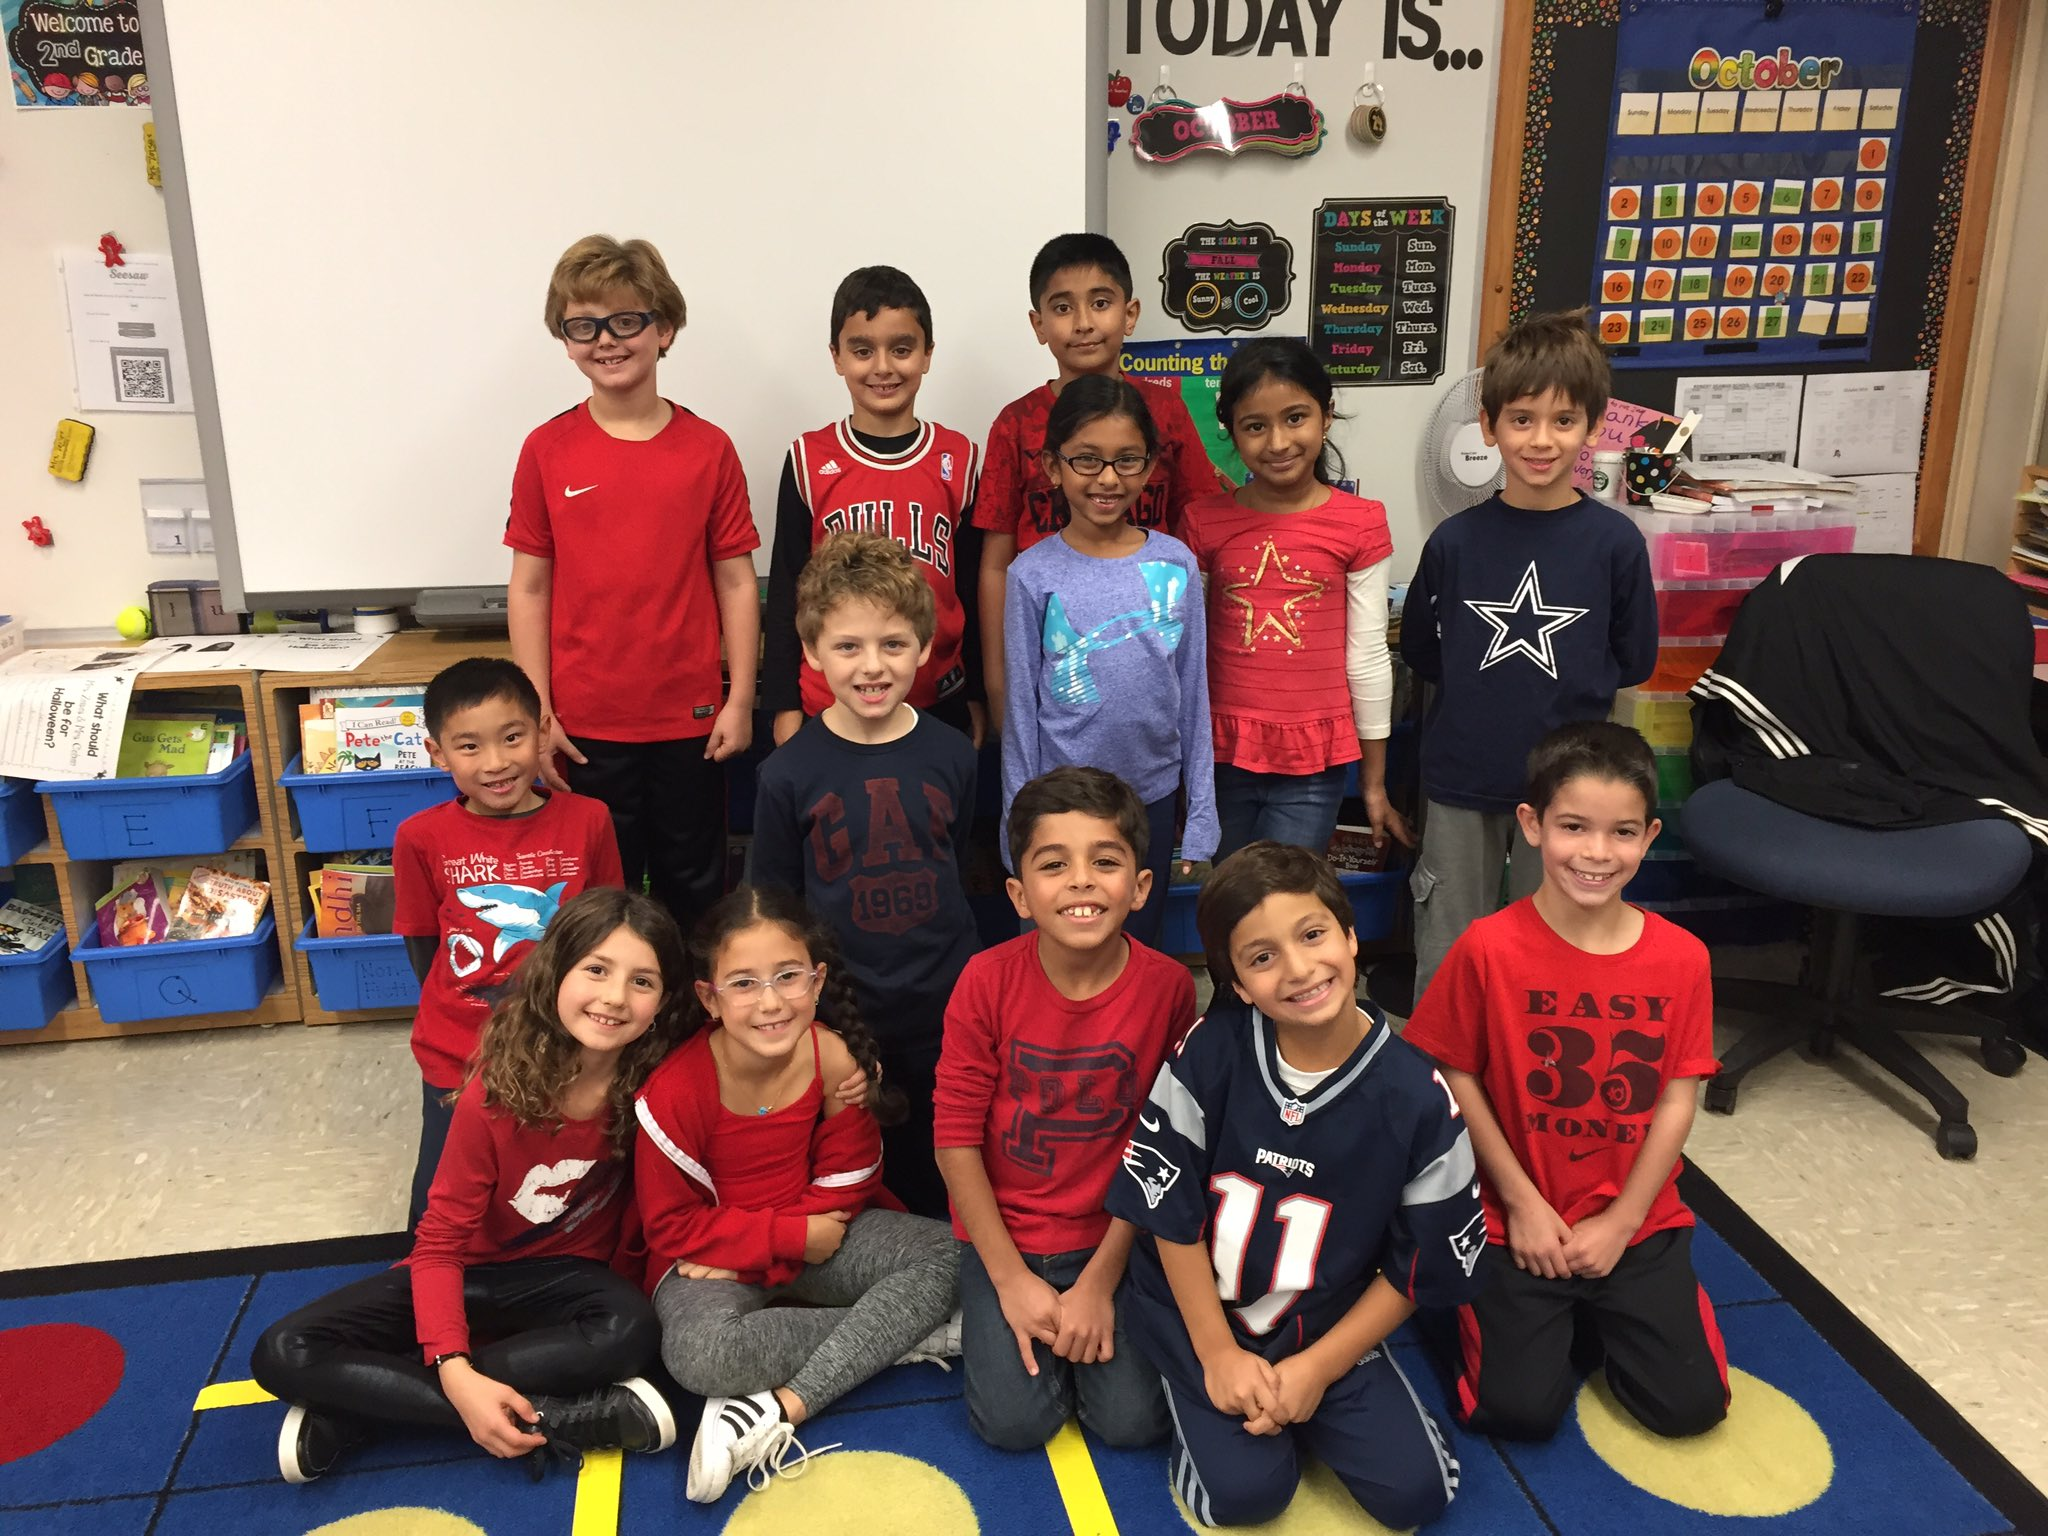 Ss wearing red in support of Red Ribbon Week🎀Smart Choices, Good Decisions = Healthy Living❤️@Ivysherman @AcohenAllie #seamanstrength #2ZC https://t.co/96TFvsWnkr